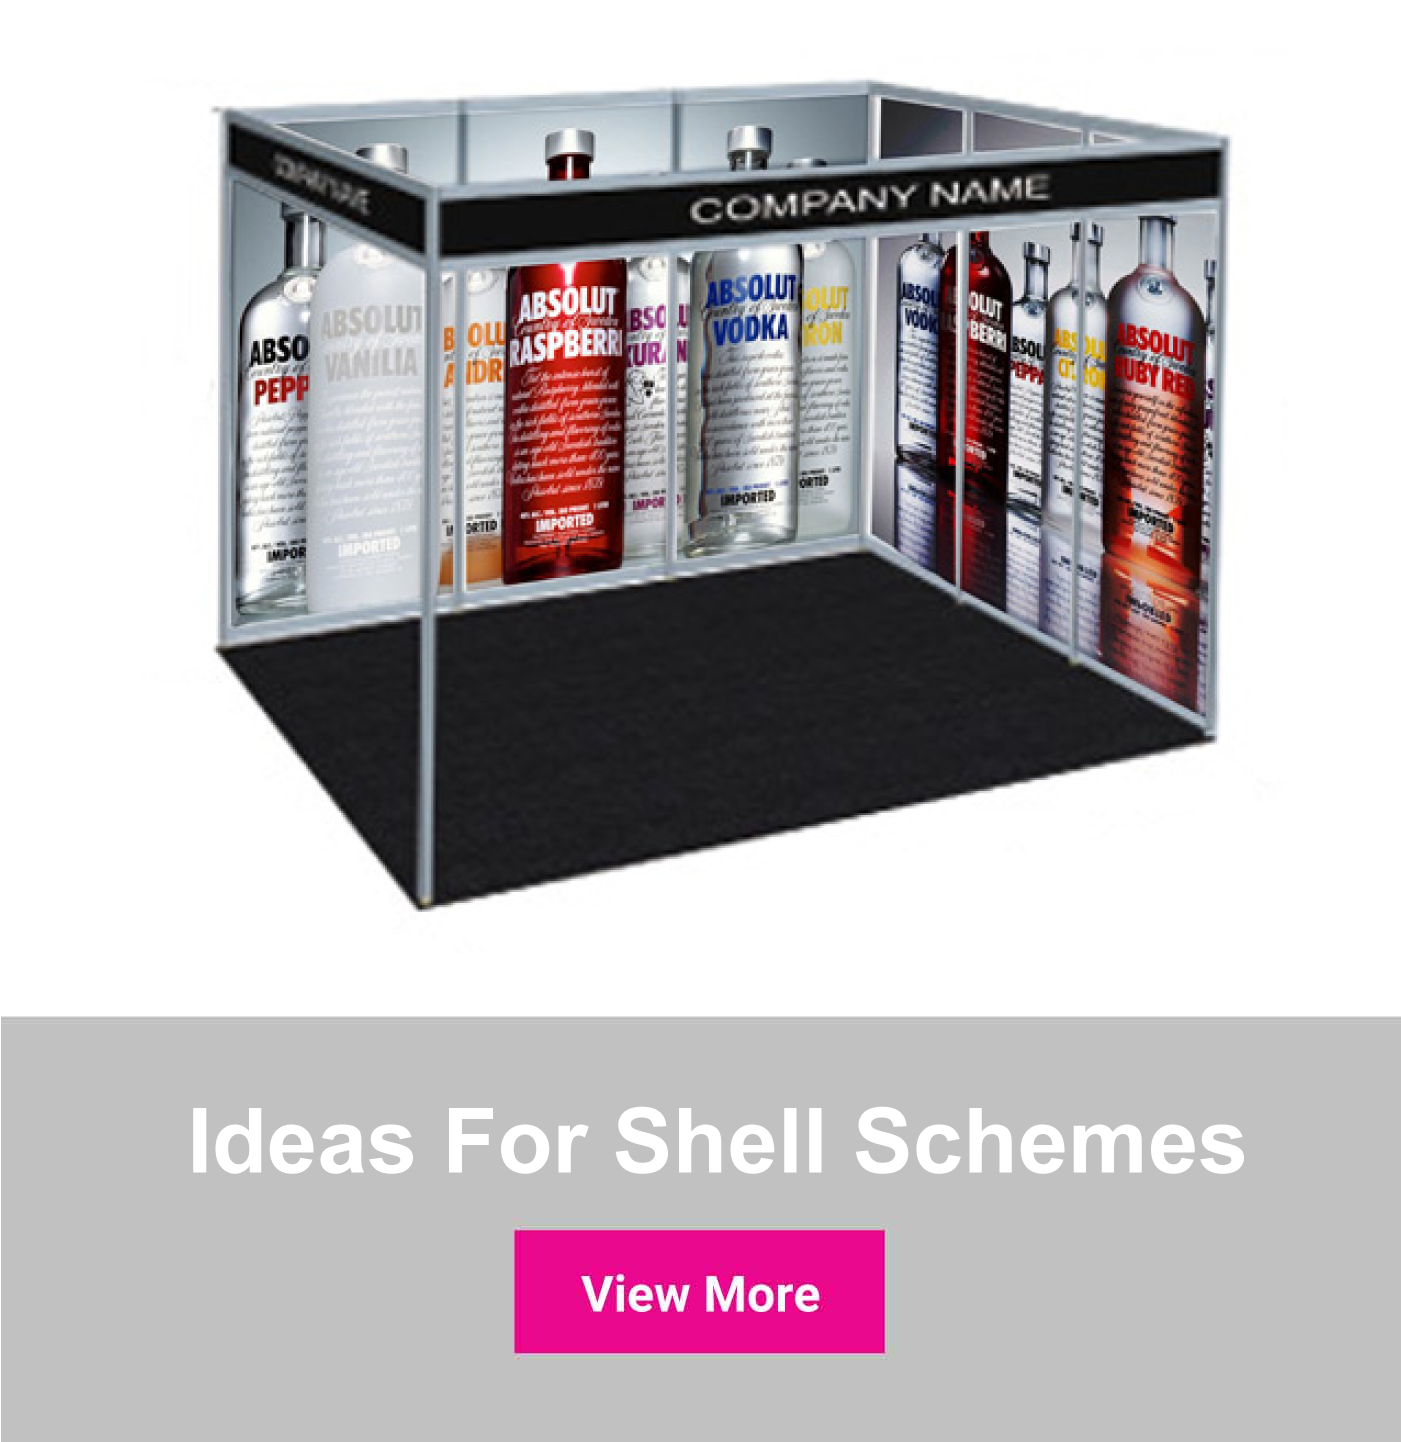 Ideas For Shell Schemes